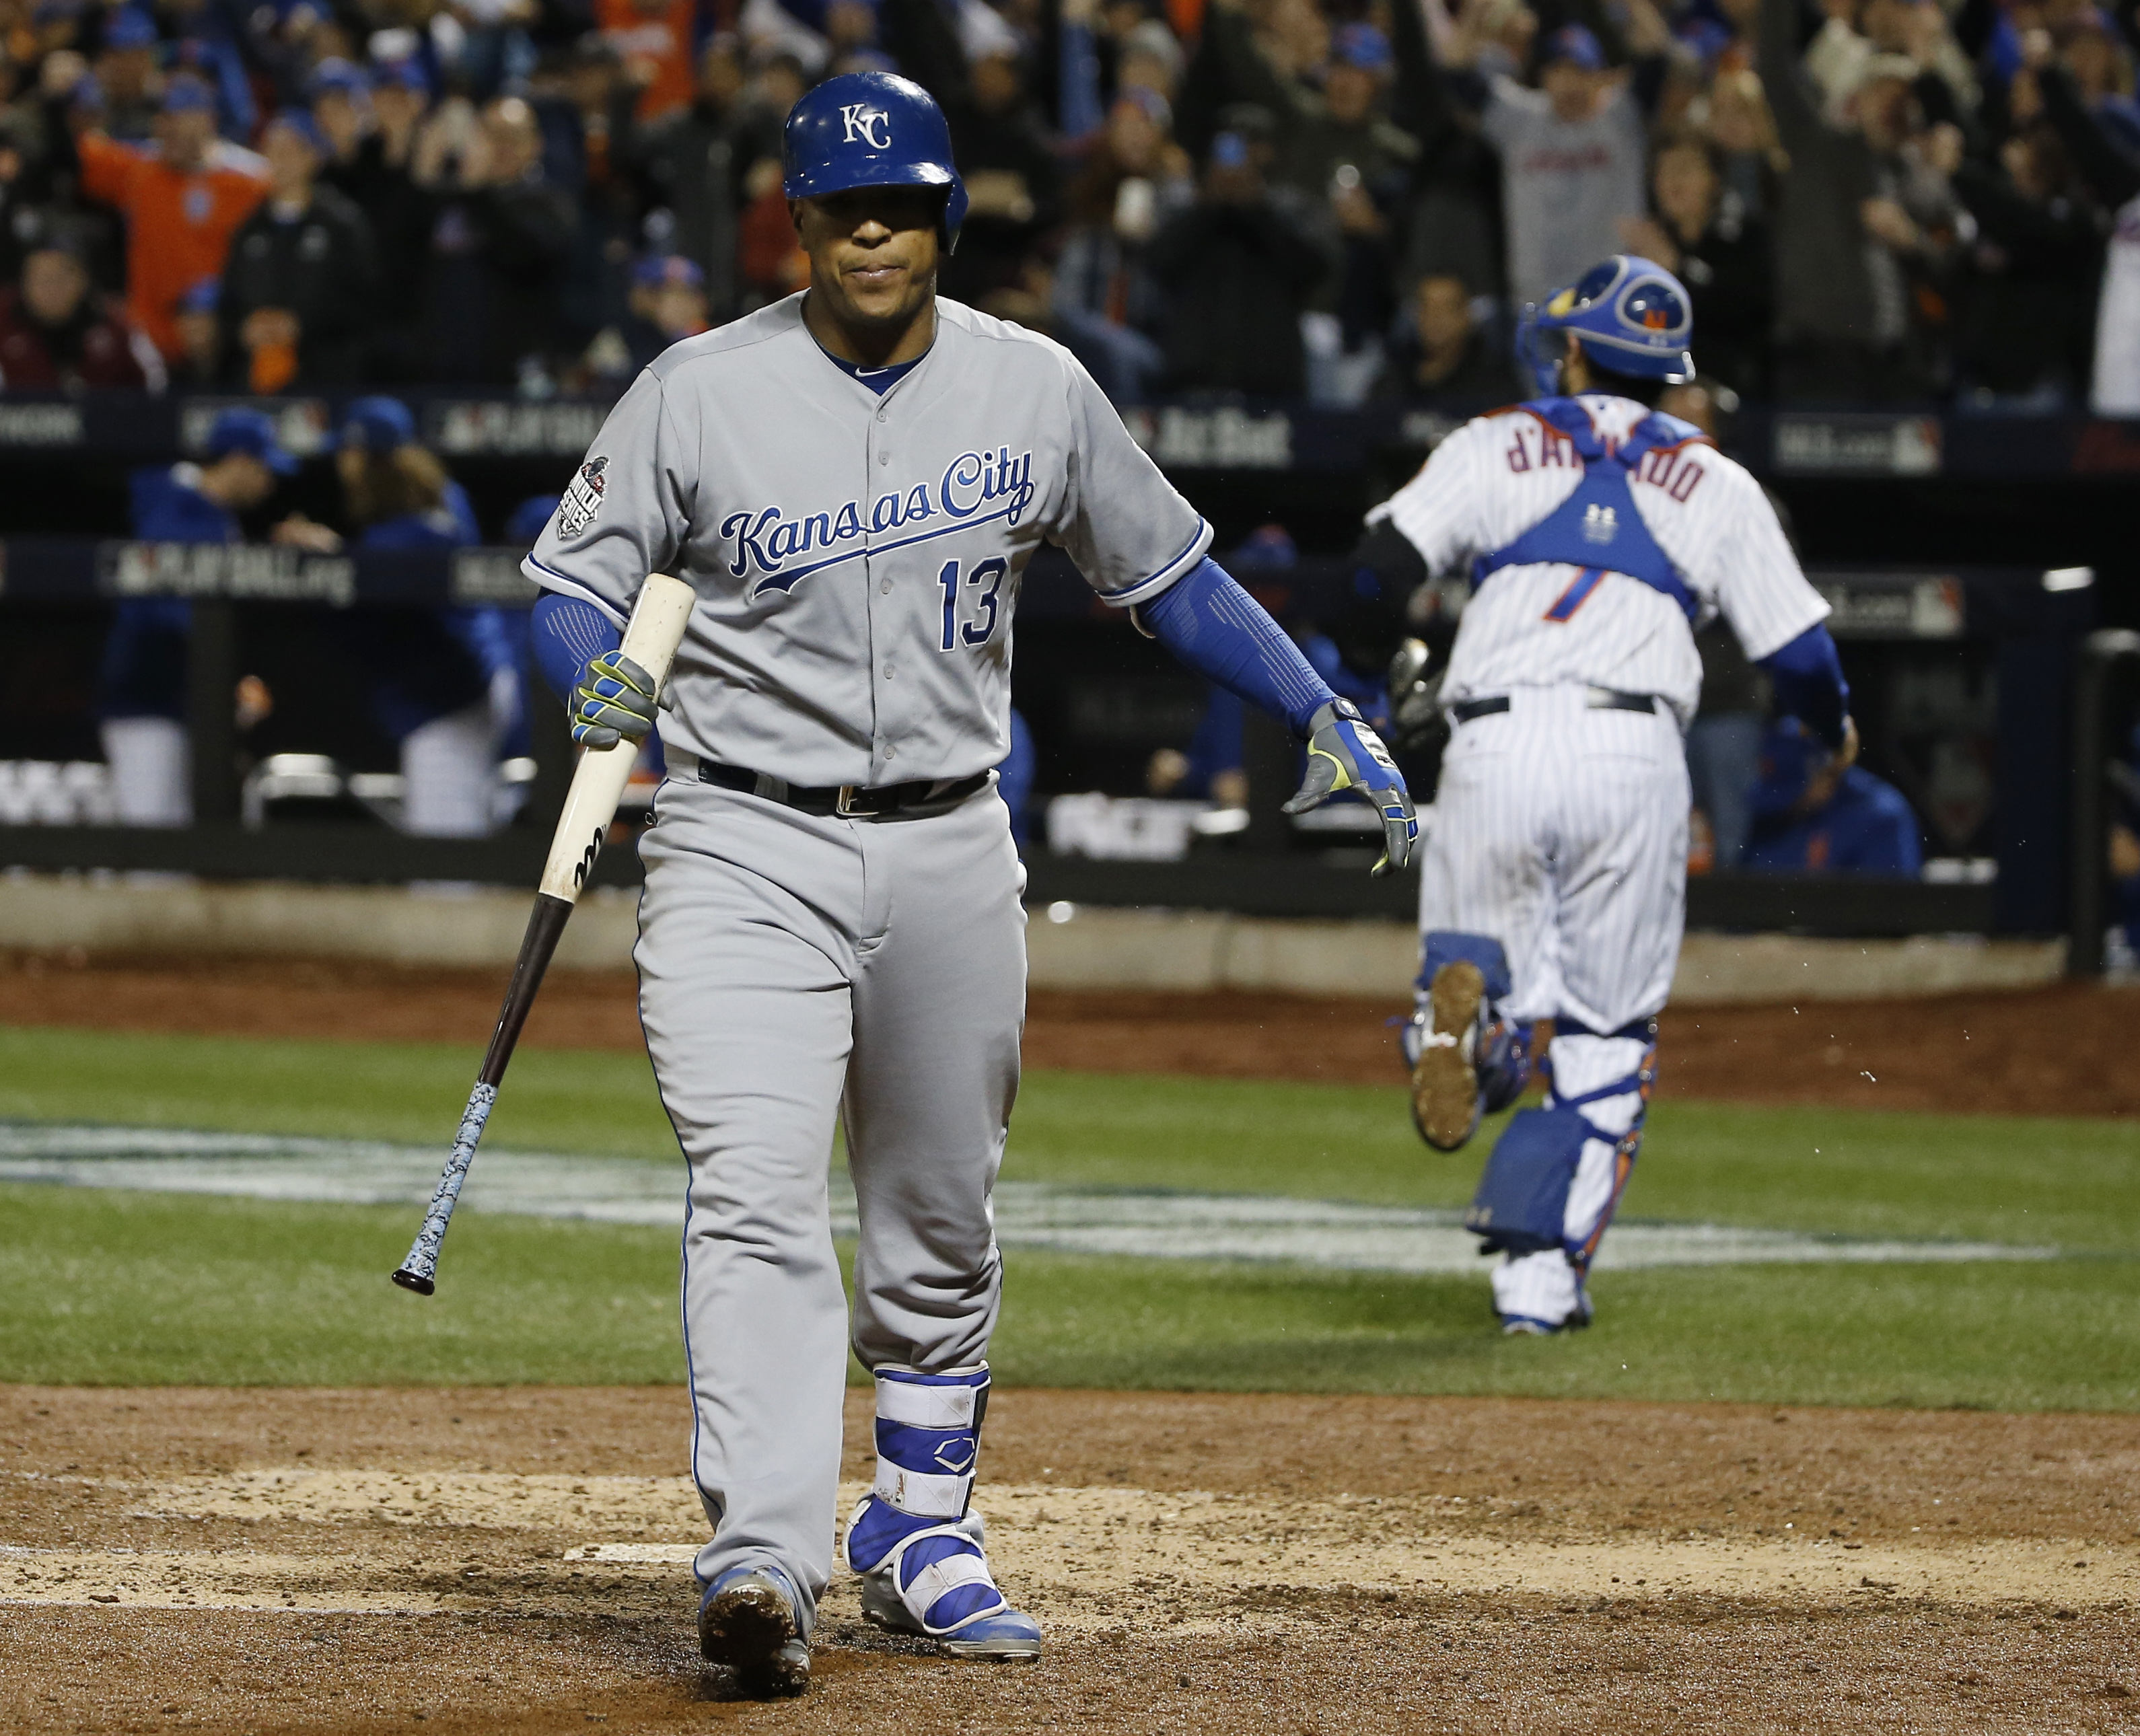 Kansas City Royals' Salvador Perez walks back to the dugout after striking out during the sixth inning of Game 4 of the Major League Baseball World Series Saturday, Oct. 31, 2015, in New York. (AP Photo/Matt Slocum)